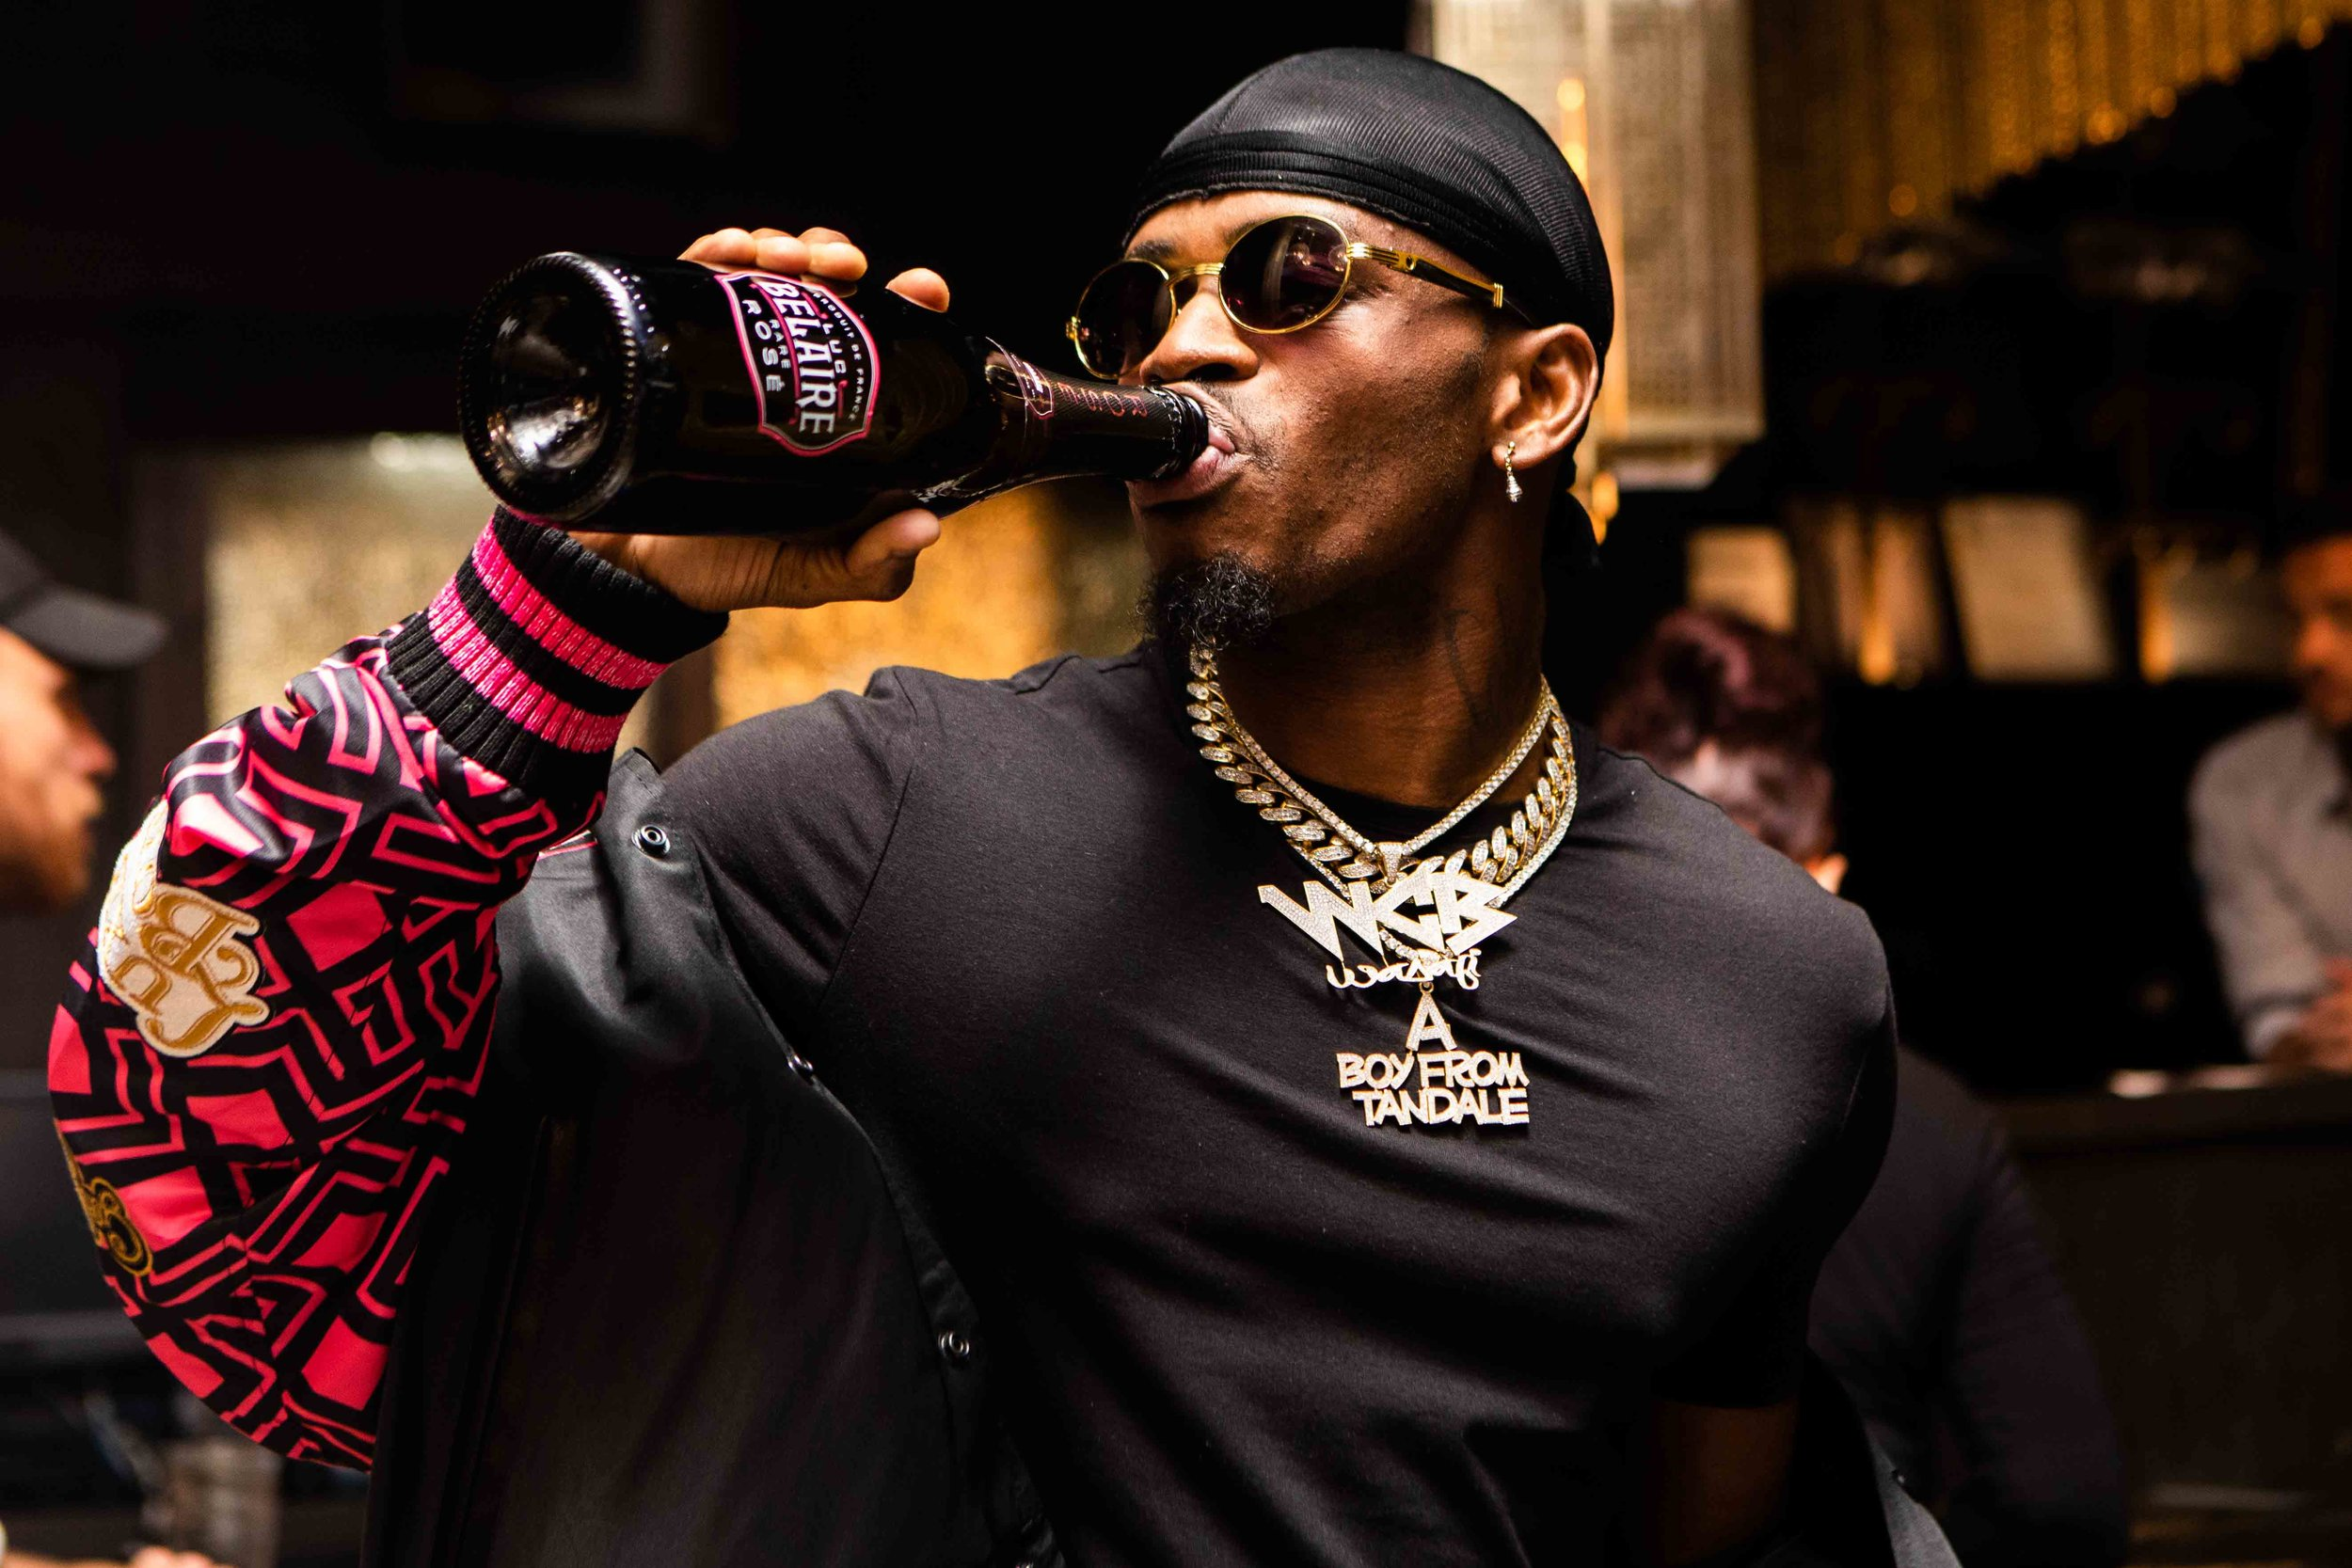 DIamond Platnumz For Luc Belaire - in association with Parks Randa